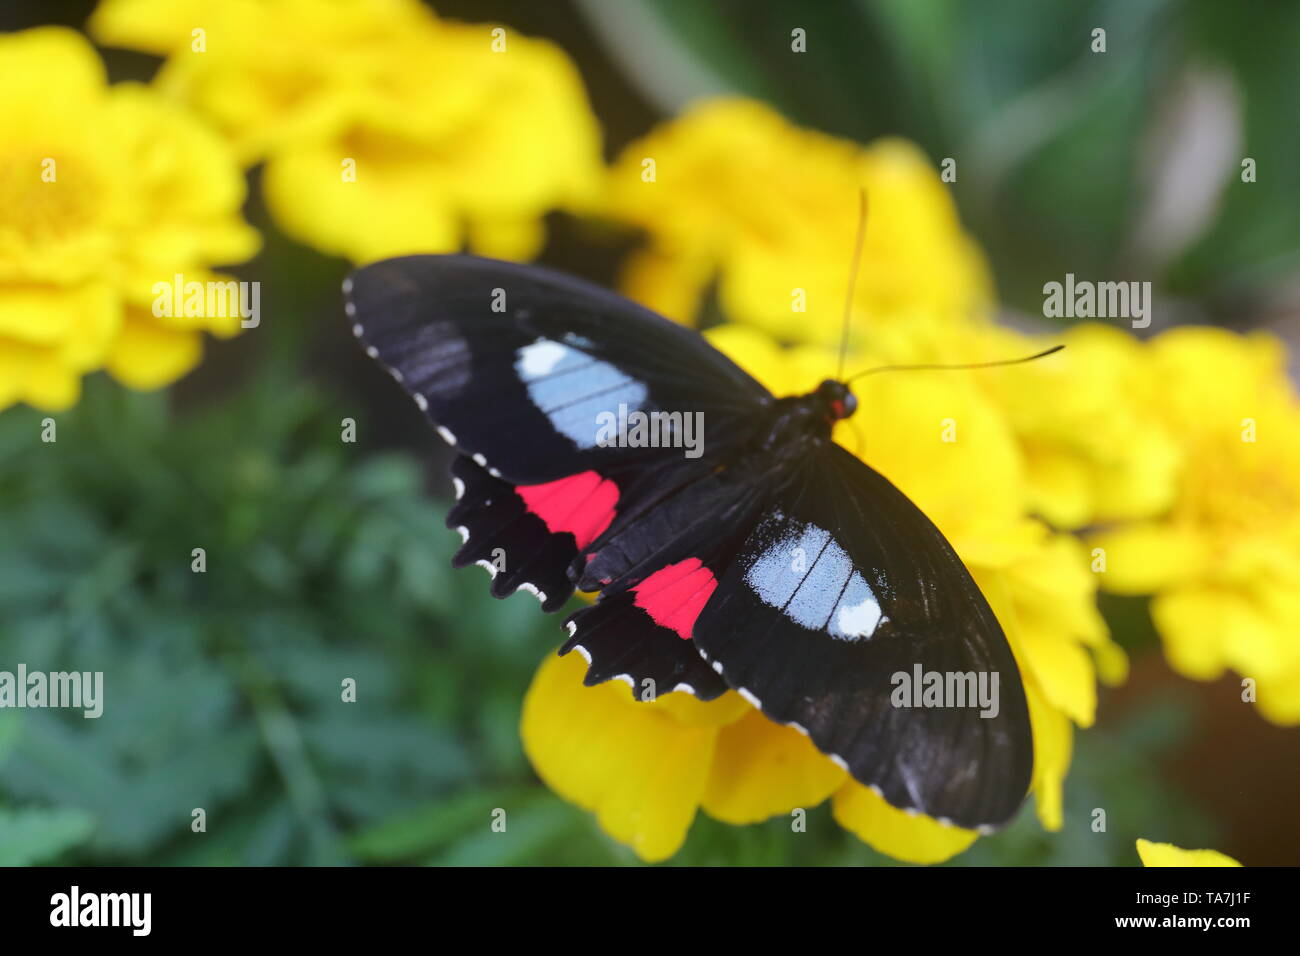 Black, scarlet, and white butterfly feeding on a yellow flower - Stock Image